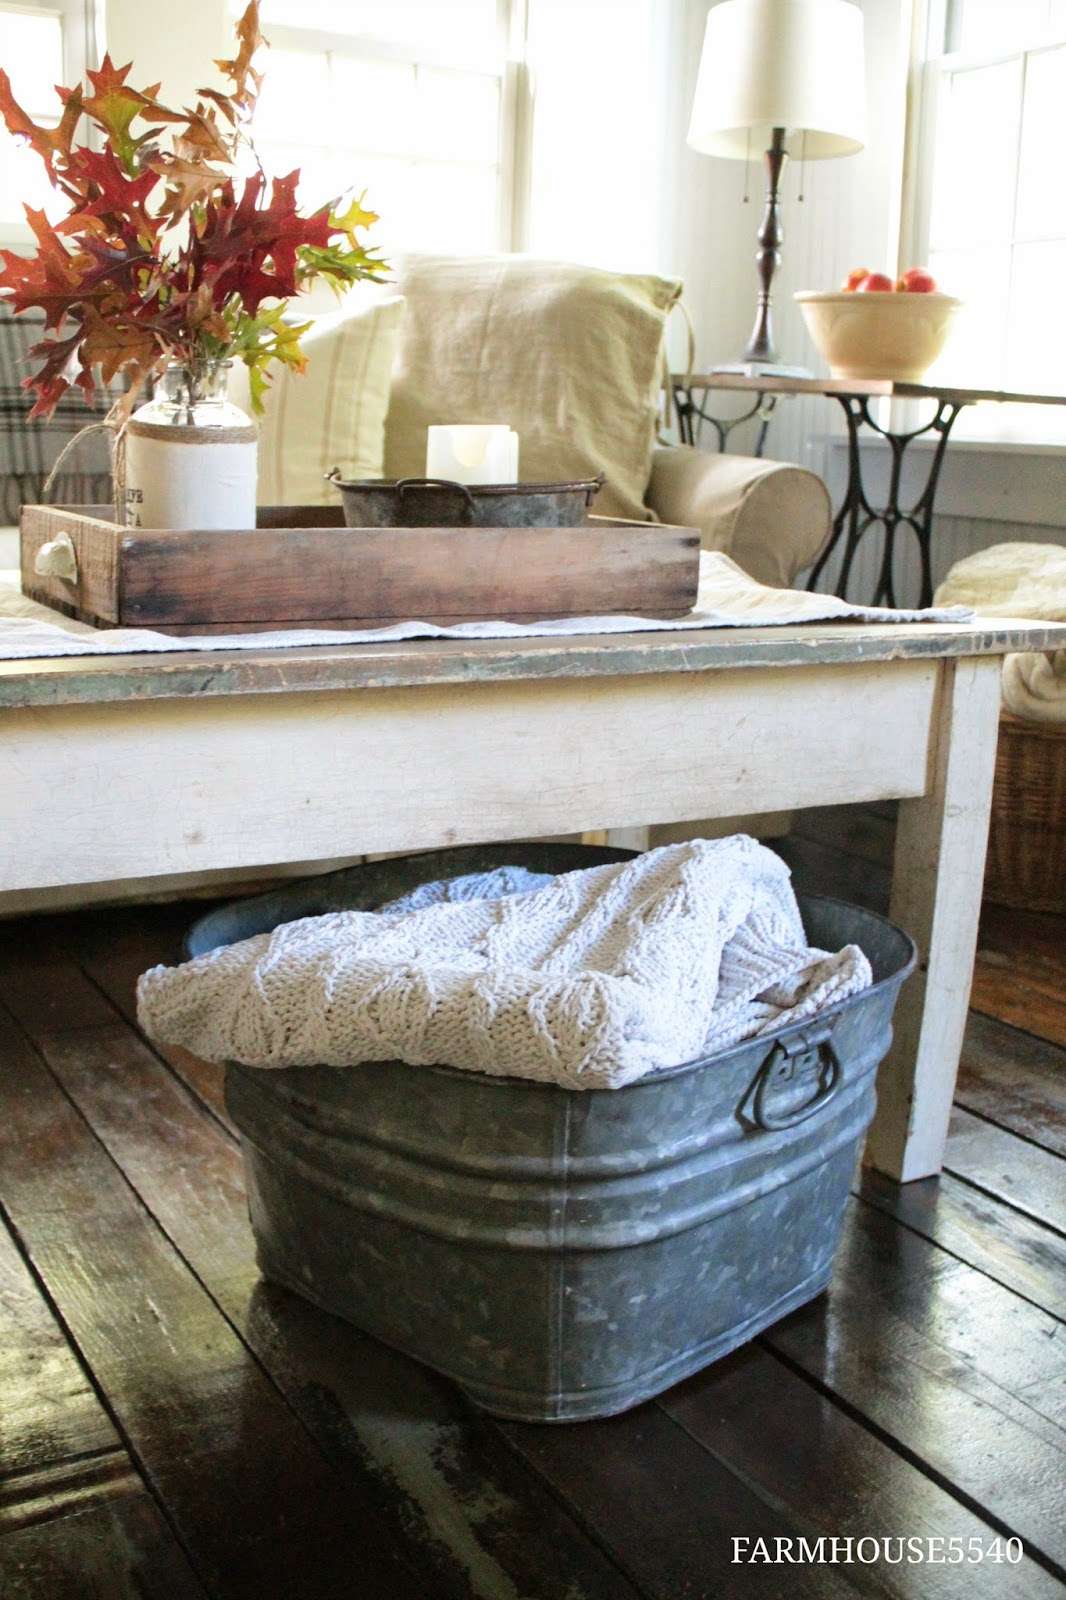 Rustic Living Room Ideas For This Fall: FARMHOUSE 5540: Autumn In The Family Room